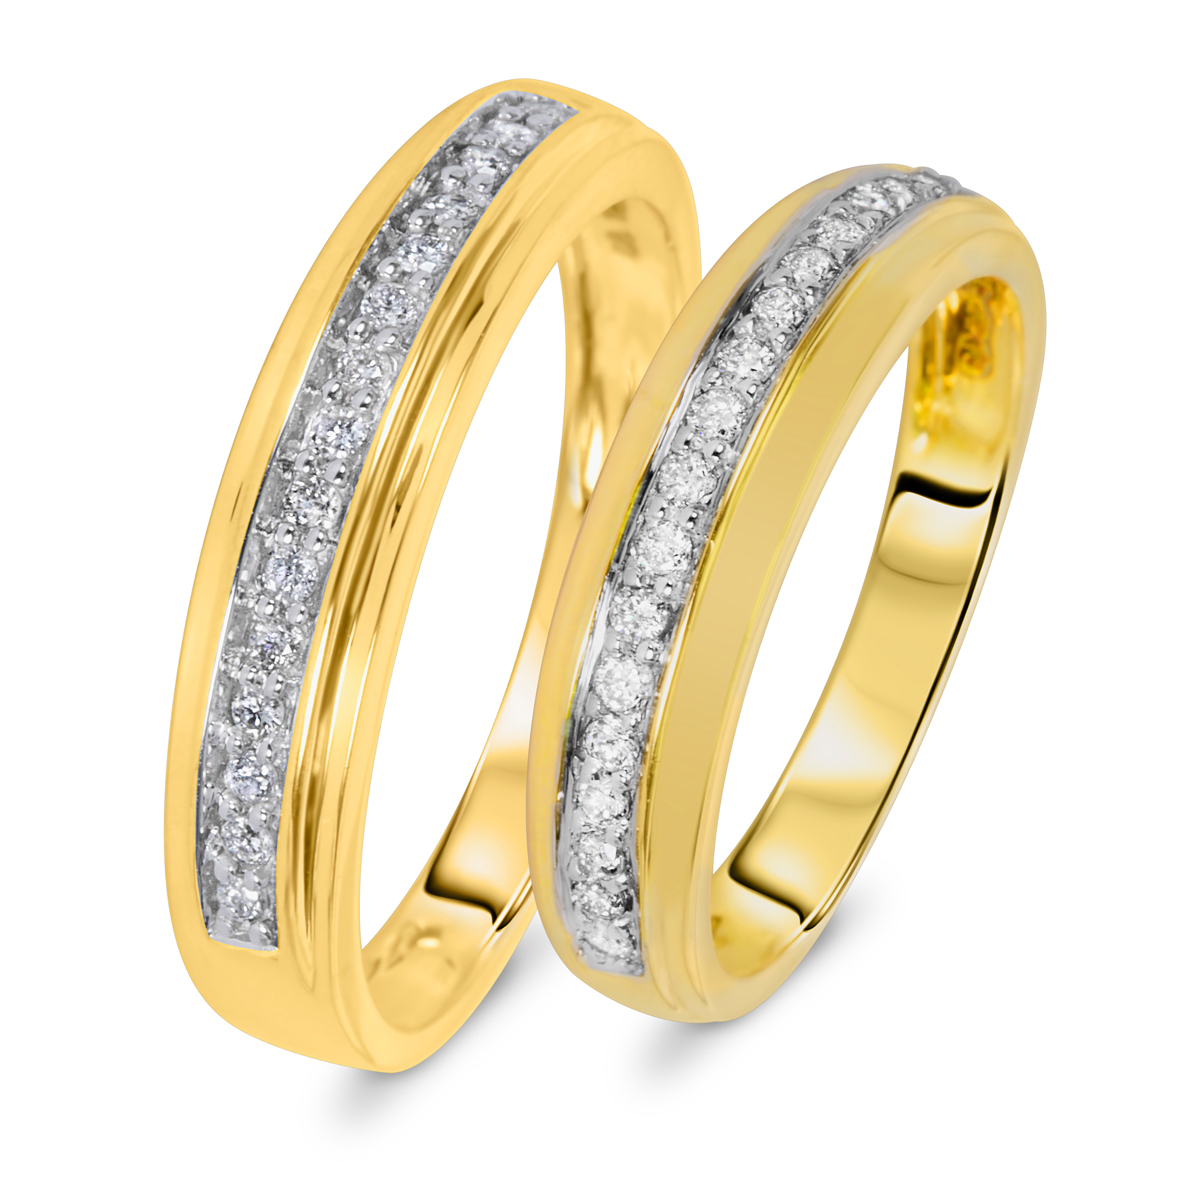 13 Carat TW Diamond Matching Wedding Rings Set 14K Yellow Gold